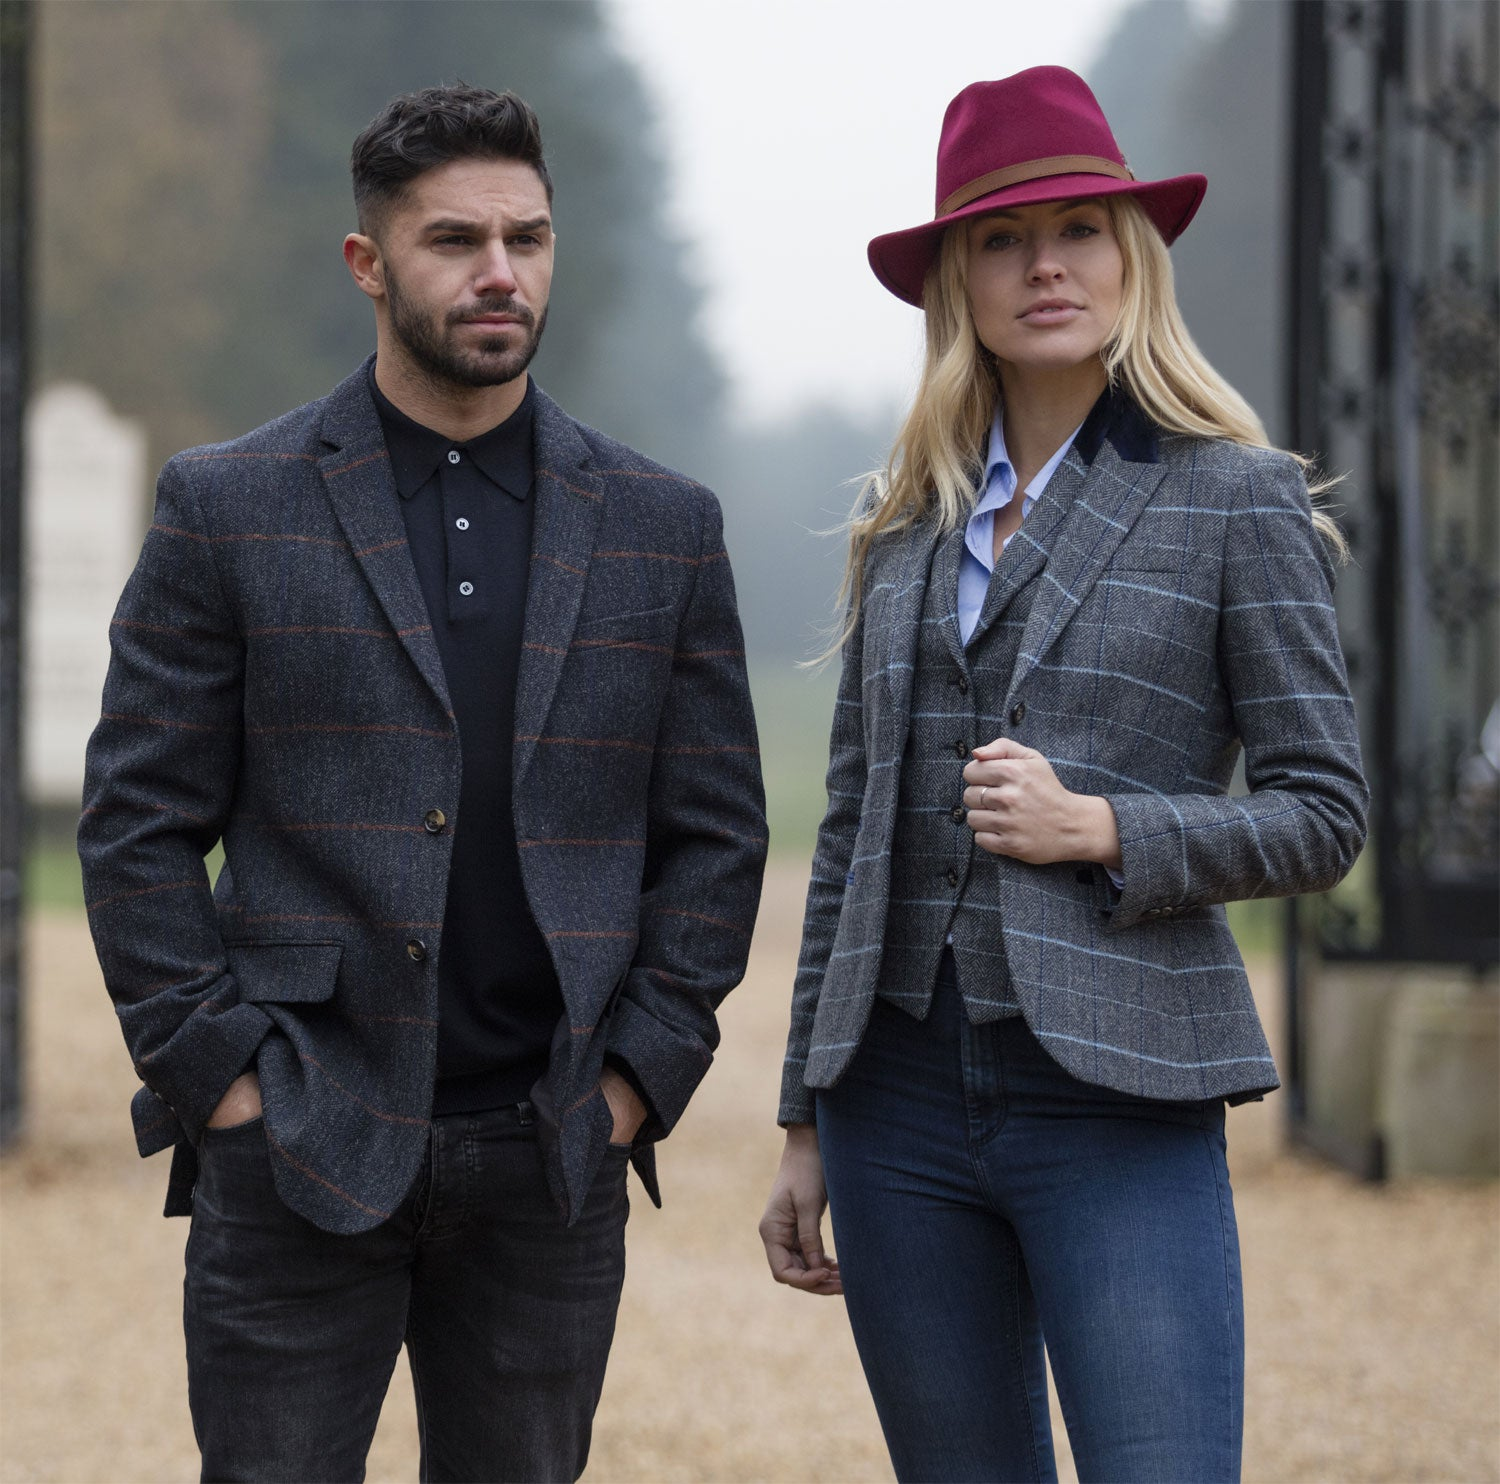 Lady and Gentleman in Alan paine Surrey tweed wear